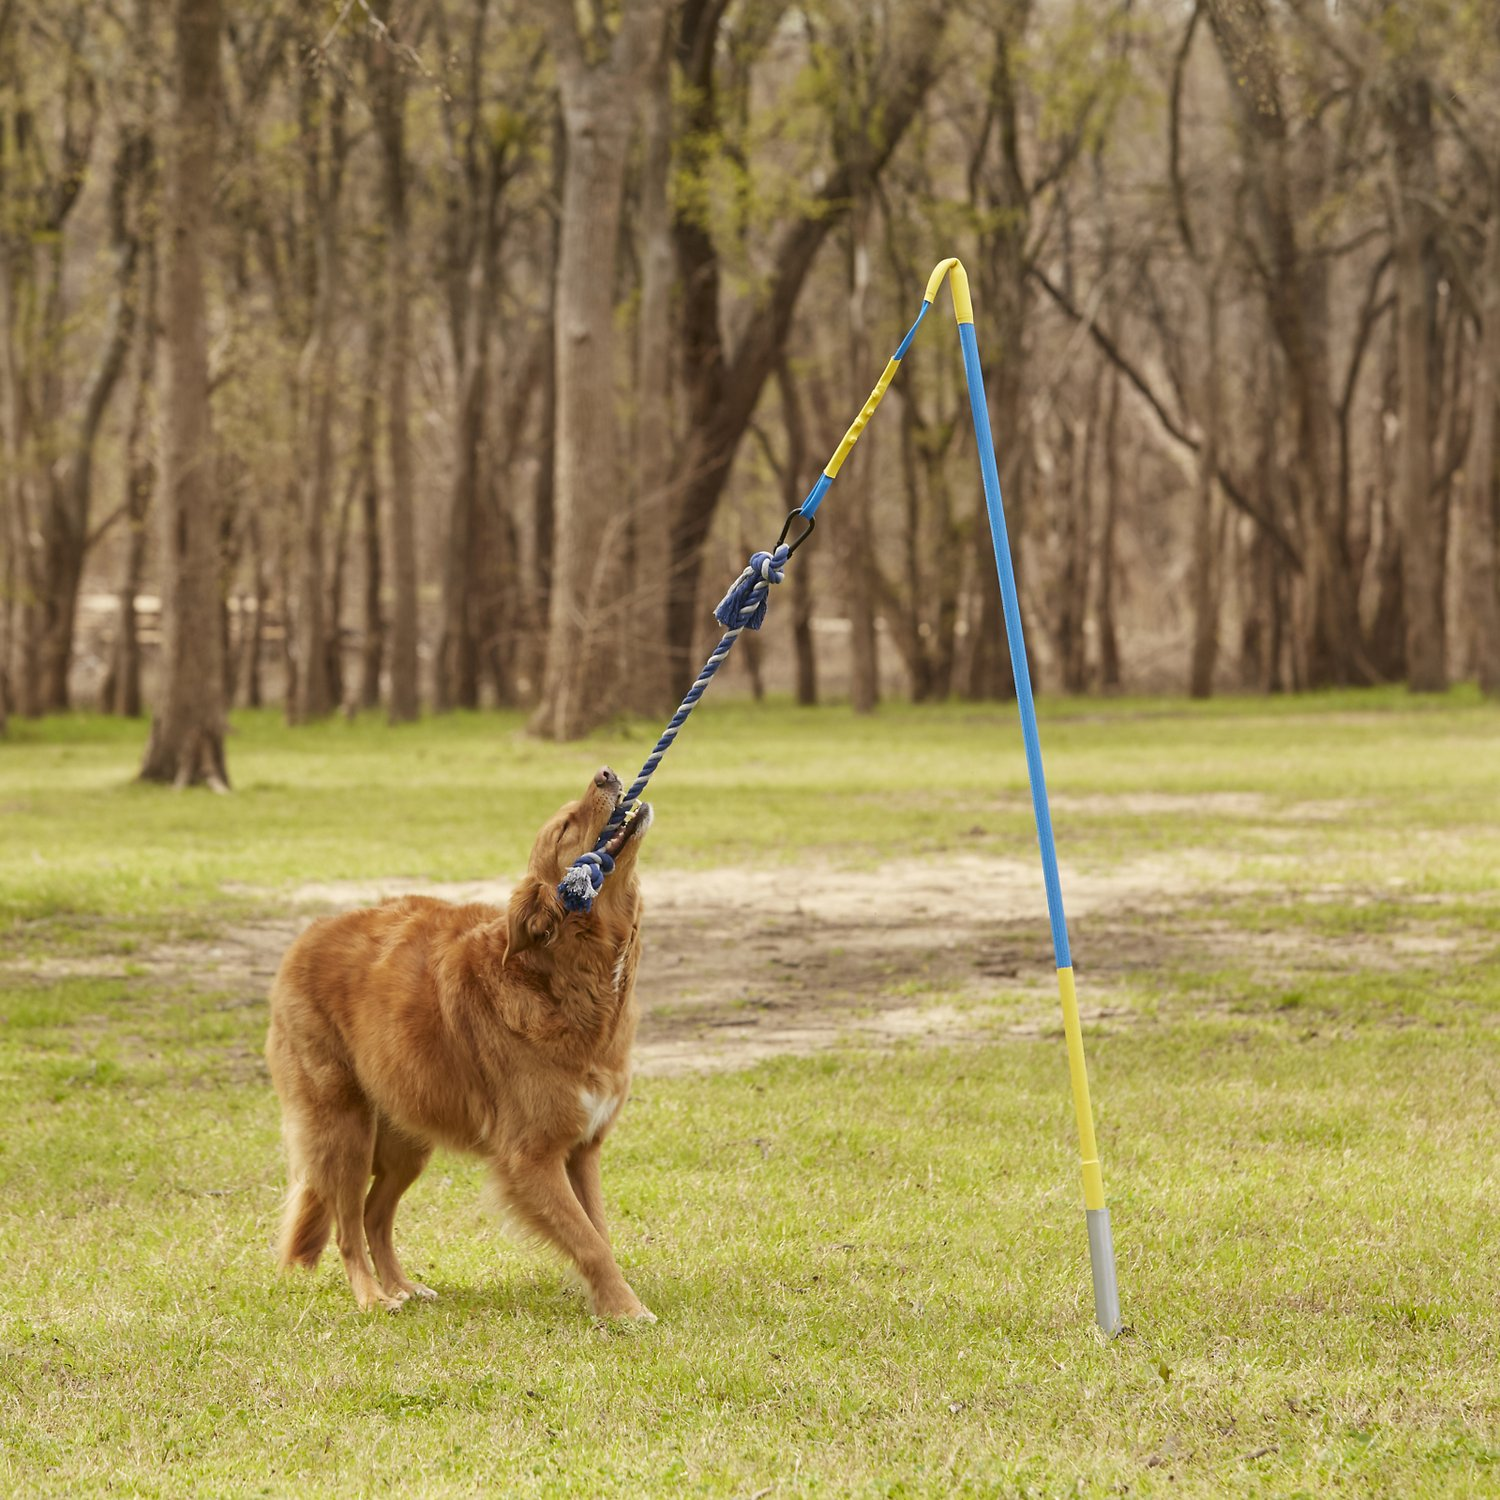 Tether Tug Outdoor Dog Toy, Medium 35 - 70 lbs - Chewy.com